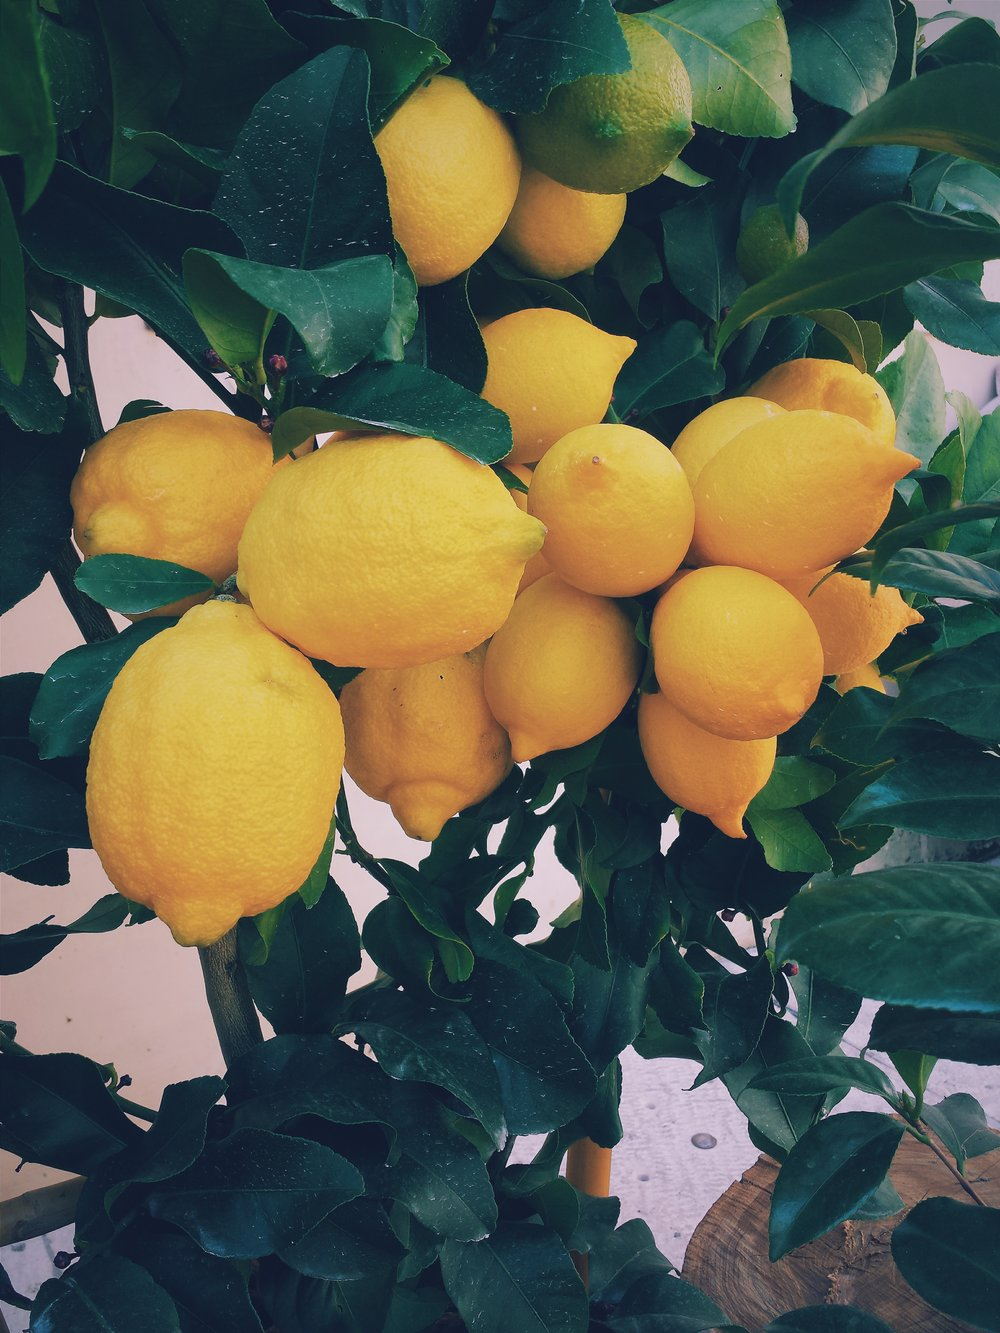 Lemon essential oil is produced by cold pressing lemon peel